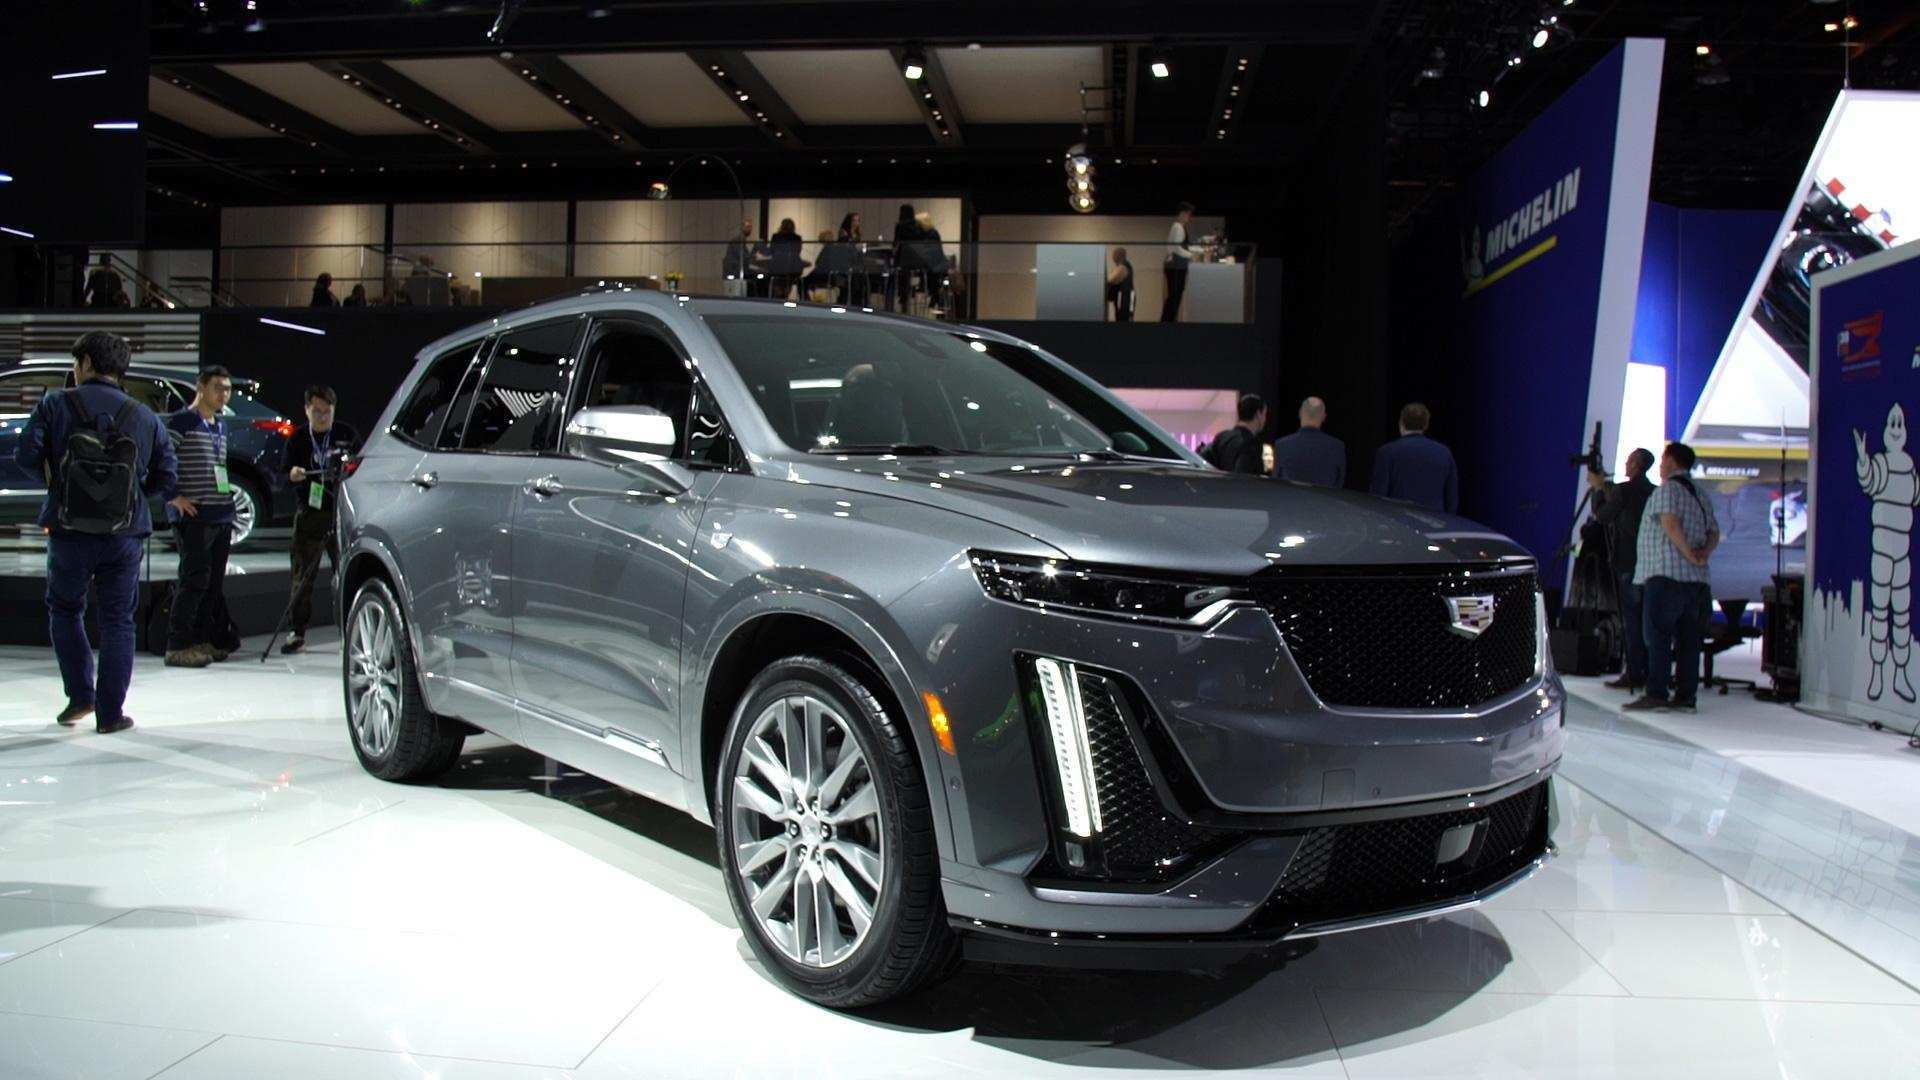 92 Concept of 2019 Cadillac Xt6 New Concept with 2019 Cadillac Xt6